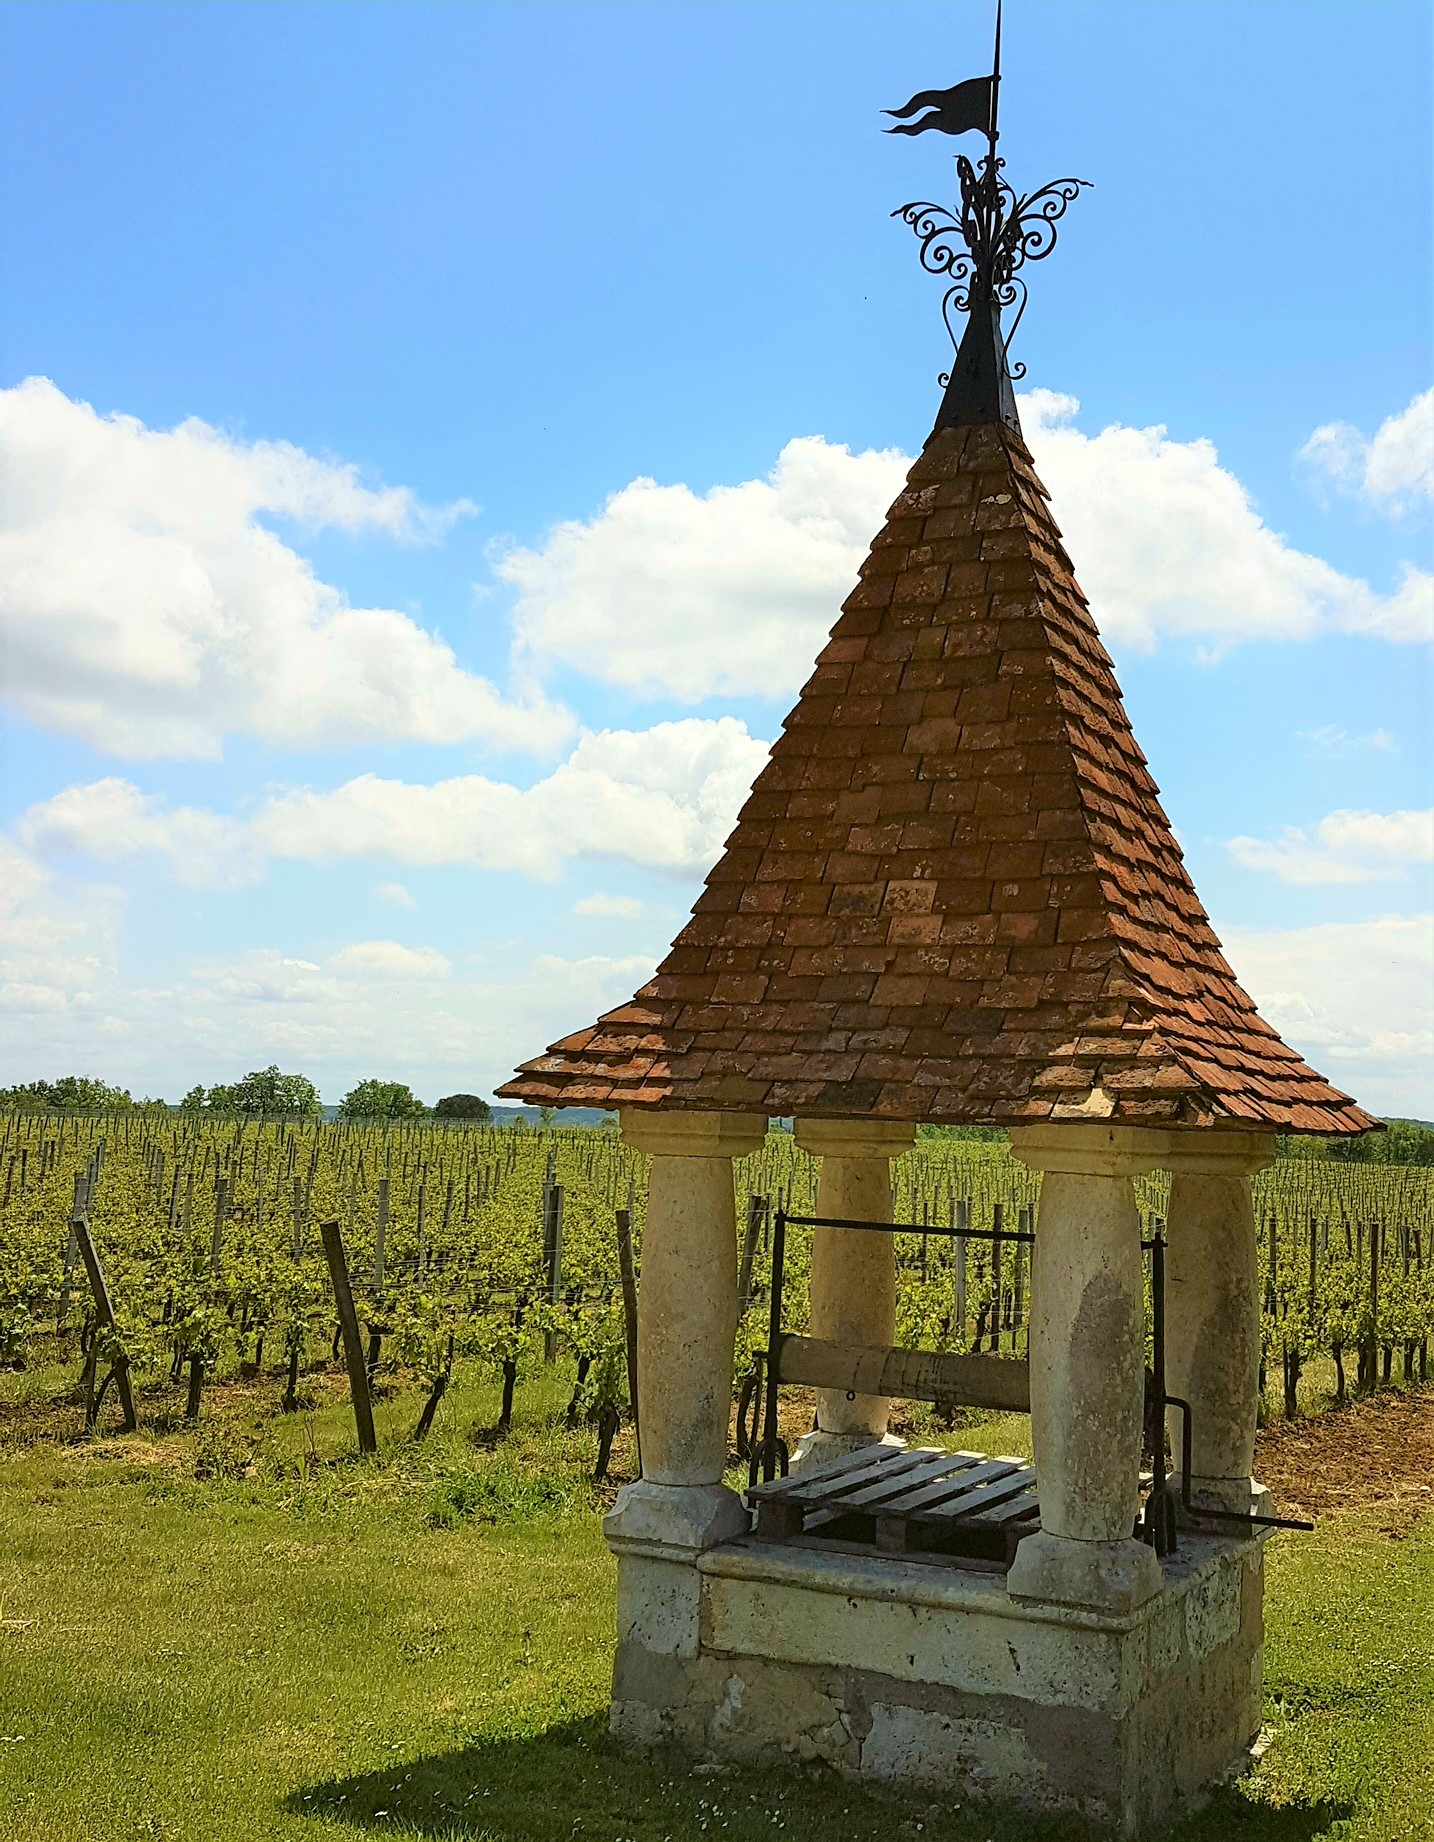 Chateau Jaubertie - go for a tasting, stay for the views!